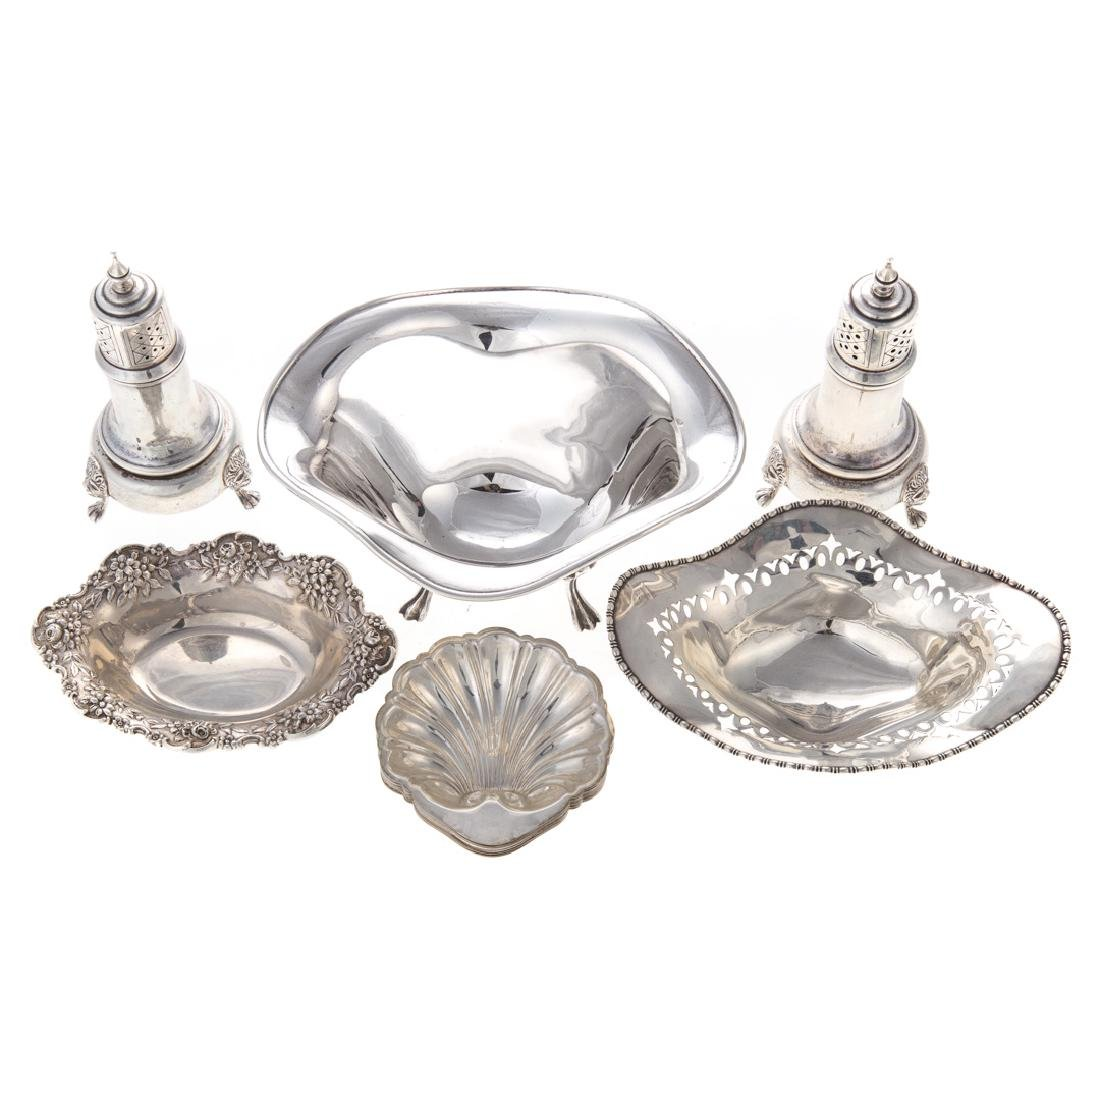 Collection of small sterling silver tableware